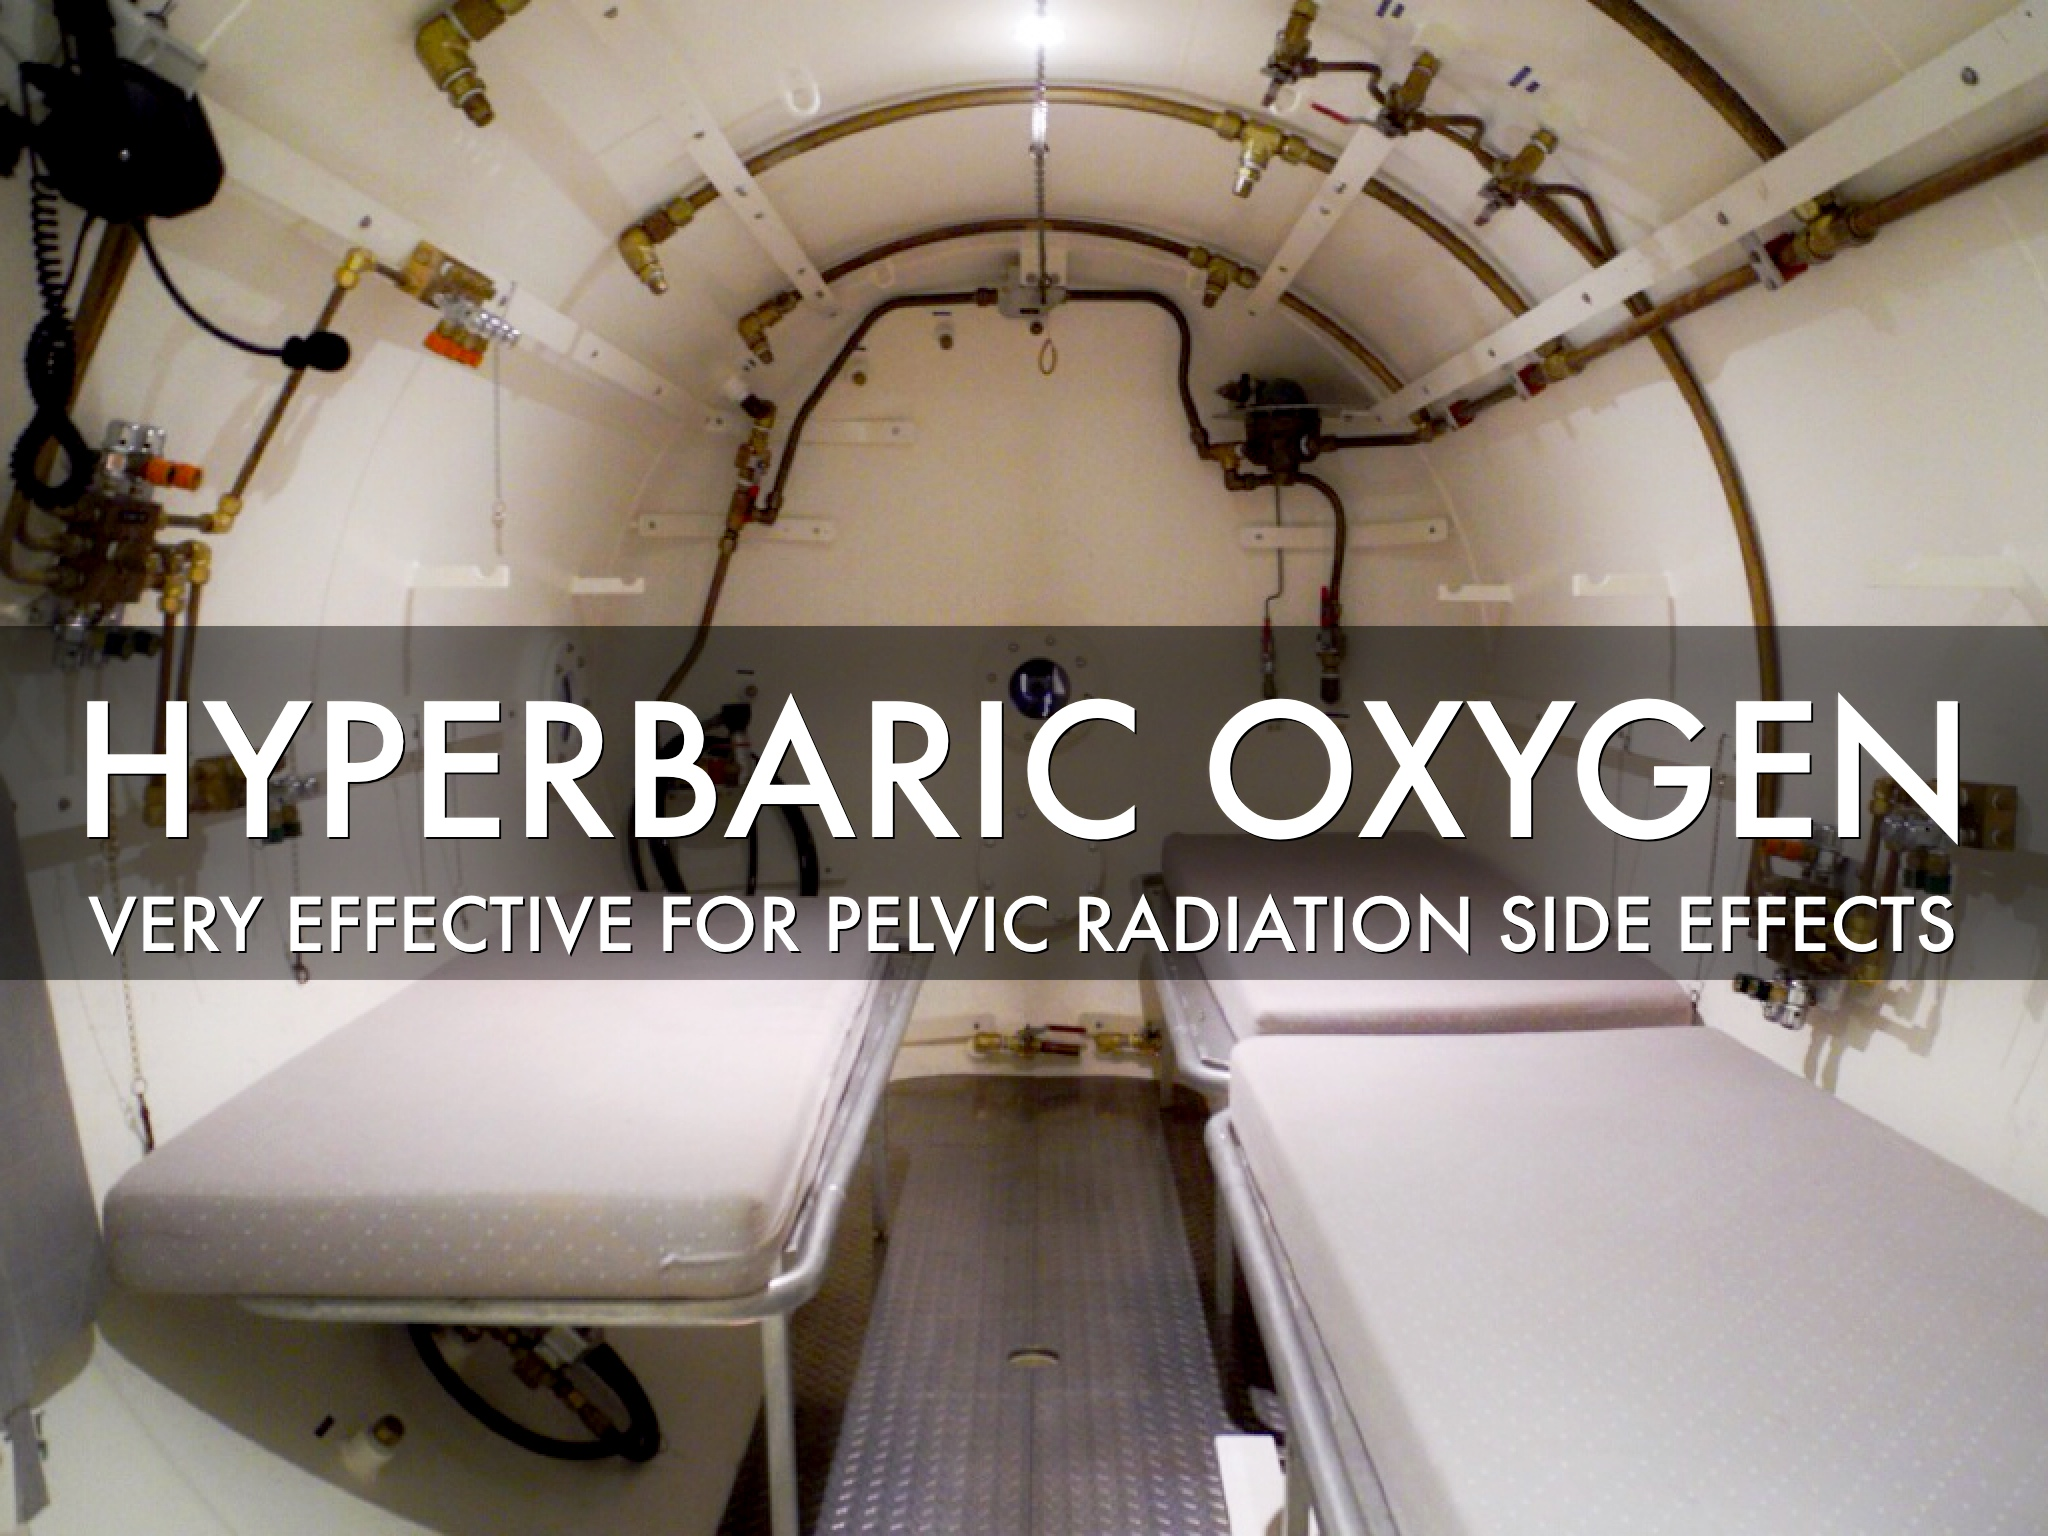 Hyperbaric Oxygen Therapy Reduces Chronic Radiation Side